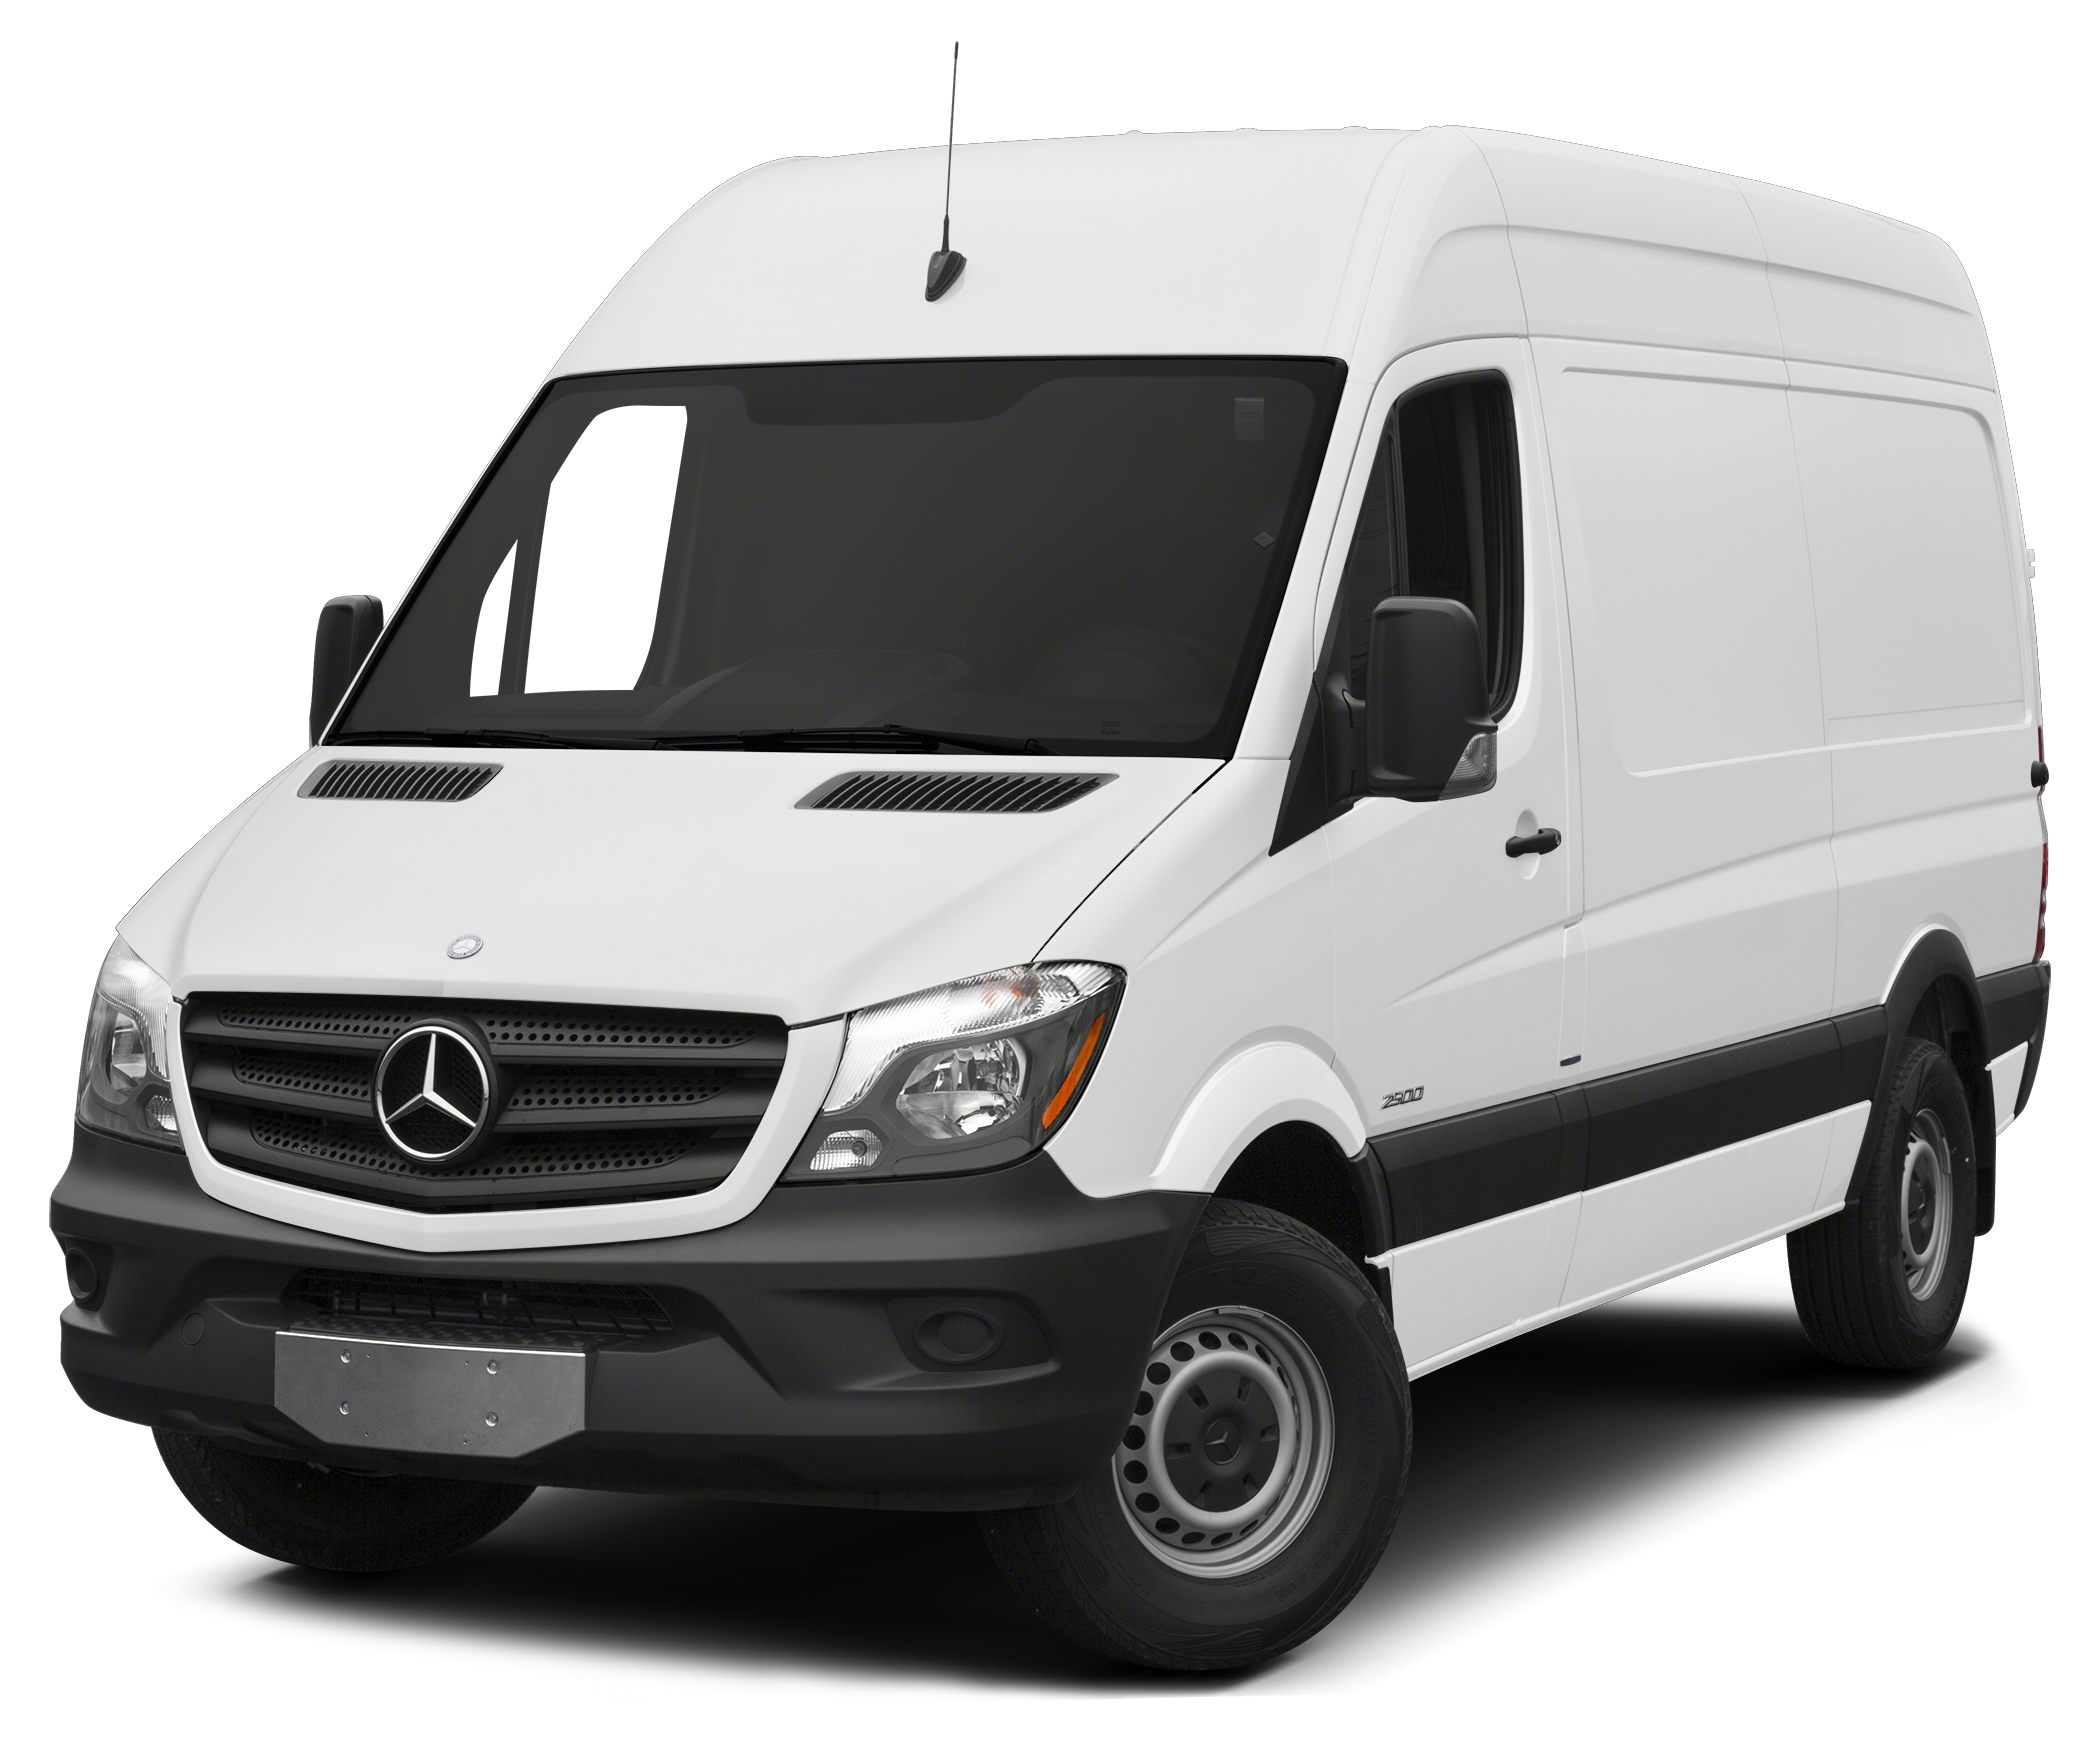 2014 MERCEDES Sprinter 2500 144 WB Cargo Miles 82152Color Arctic White Stock 19603 VIN WD3PE